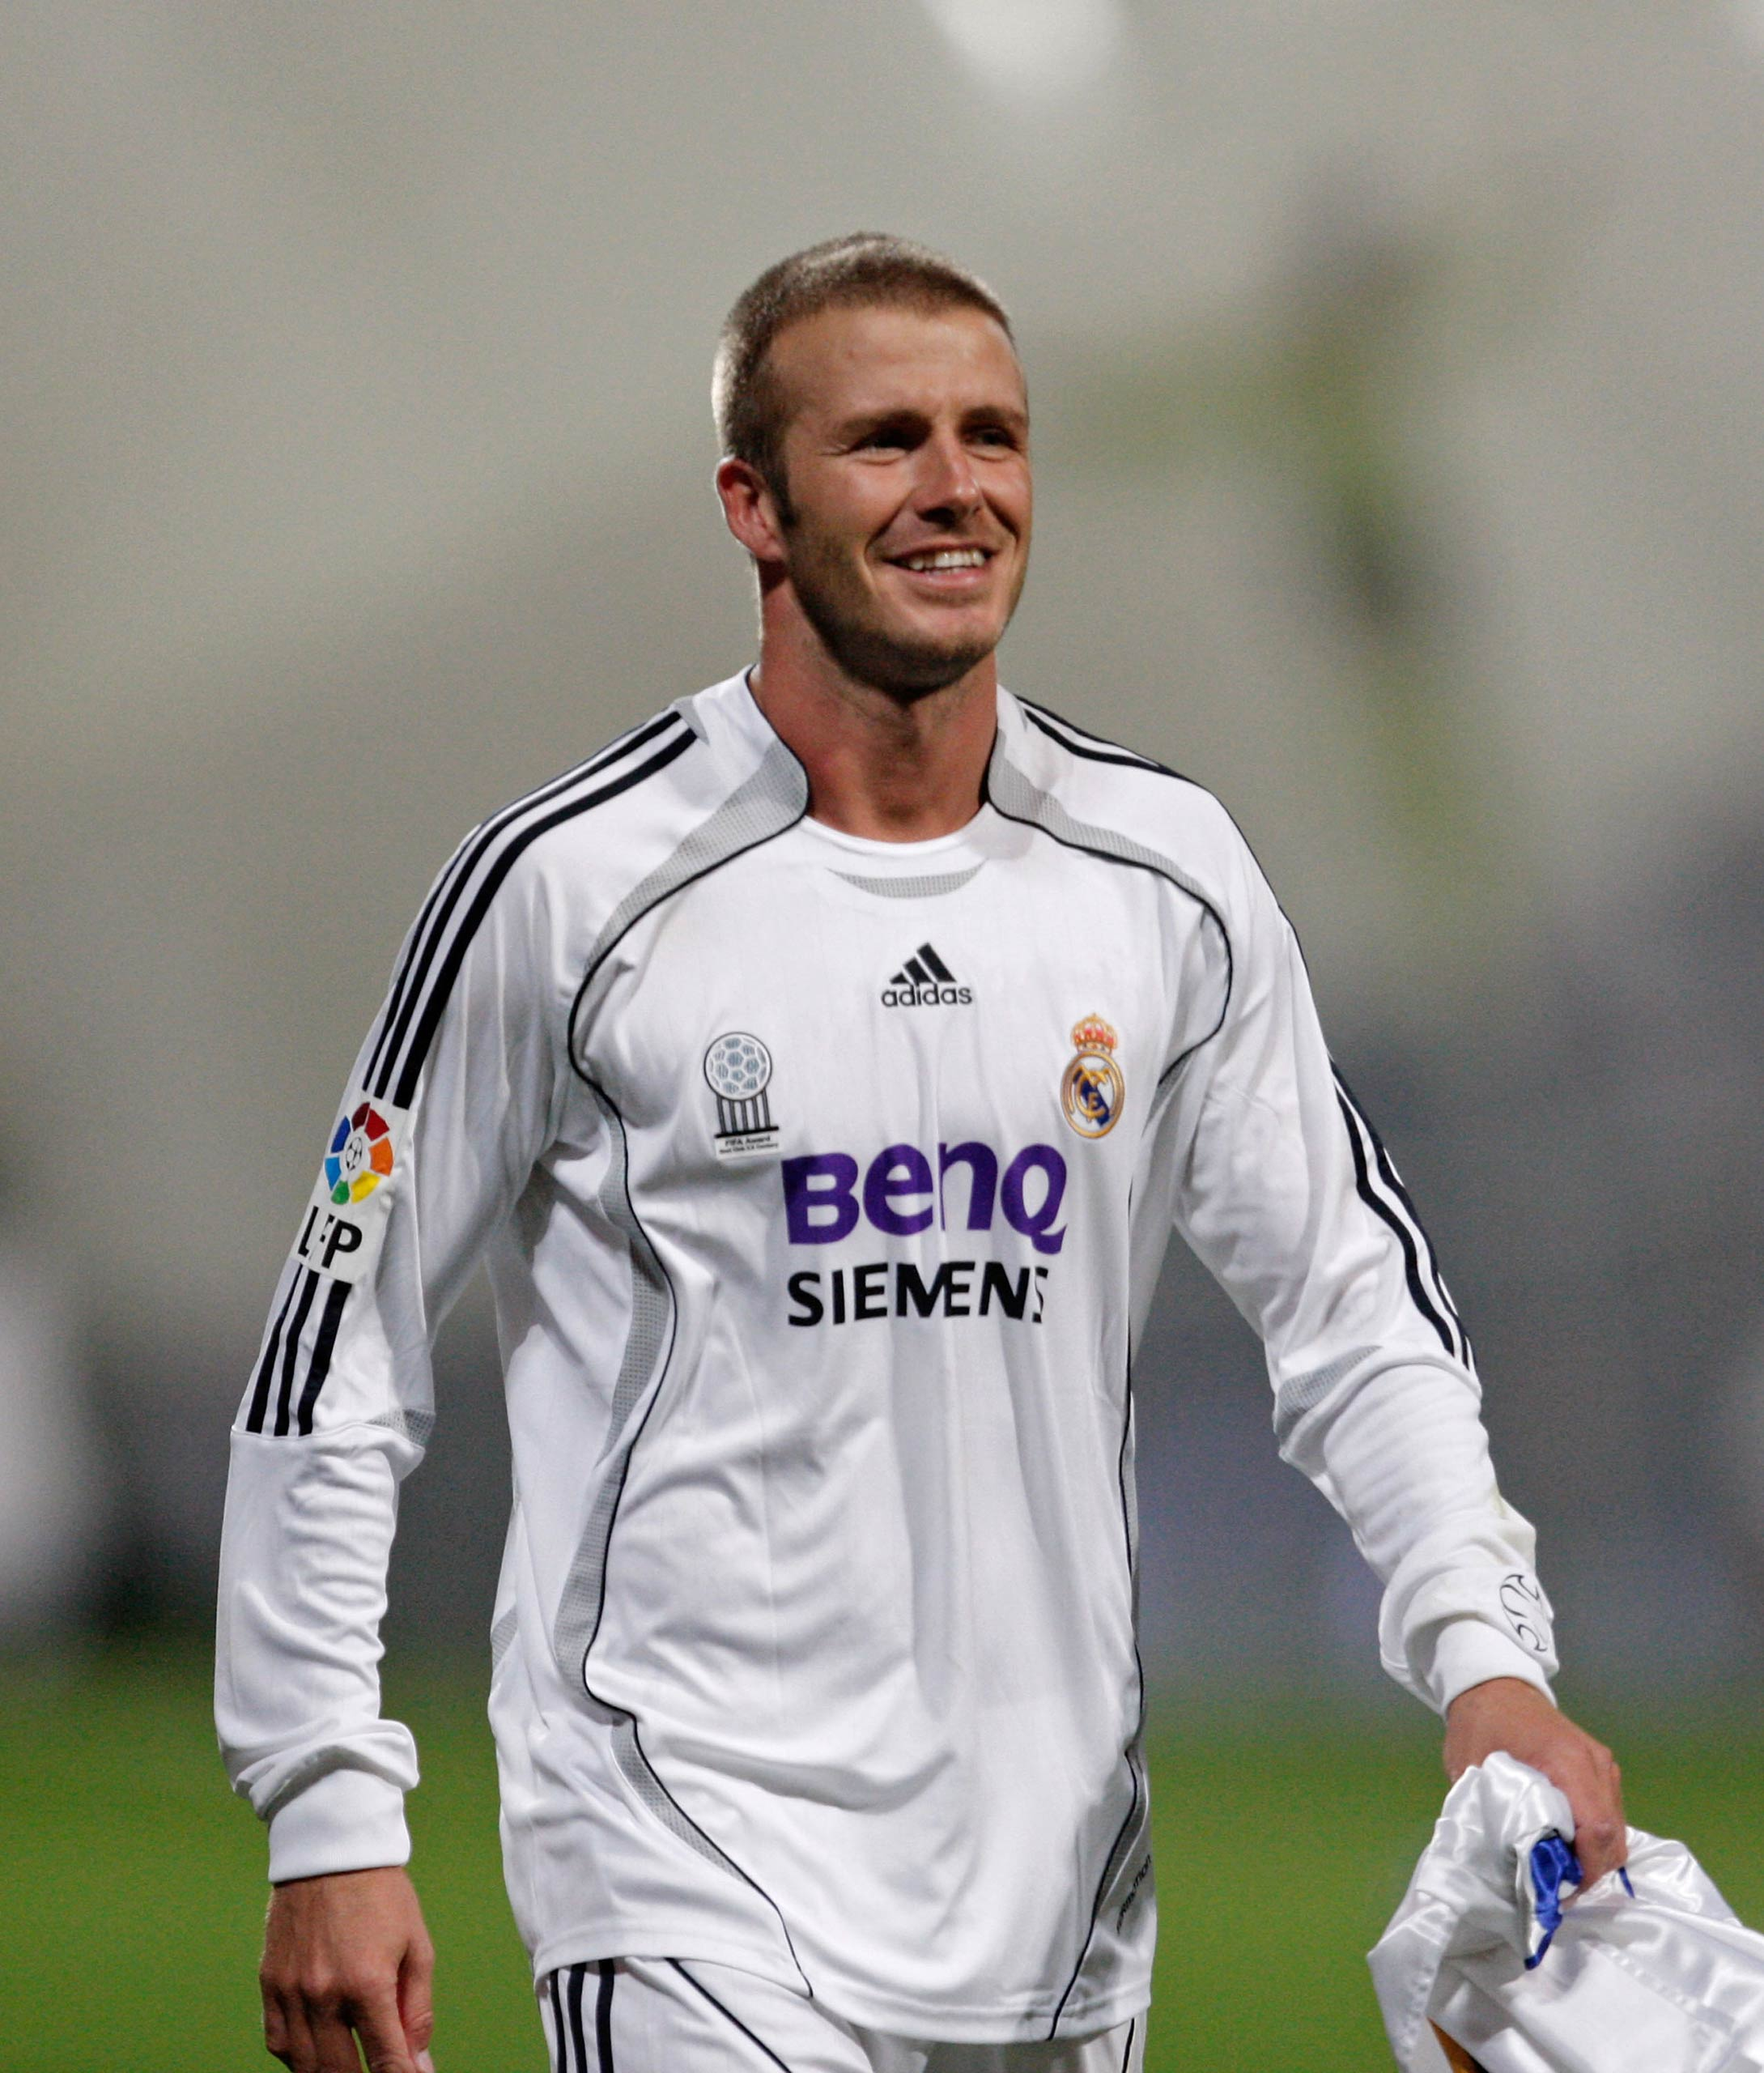 David Beckham of Real Madrid celebrates after Real won the Primera Liga after the match between Real Madrid and Mallorca at the Santiago Bernabeu stadium in Madrid, Spain in 2007.